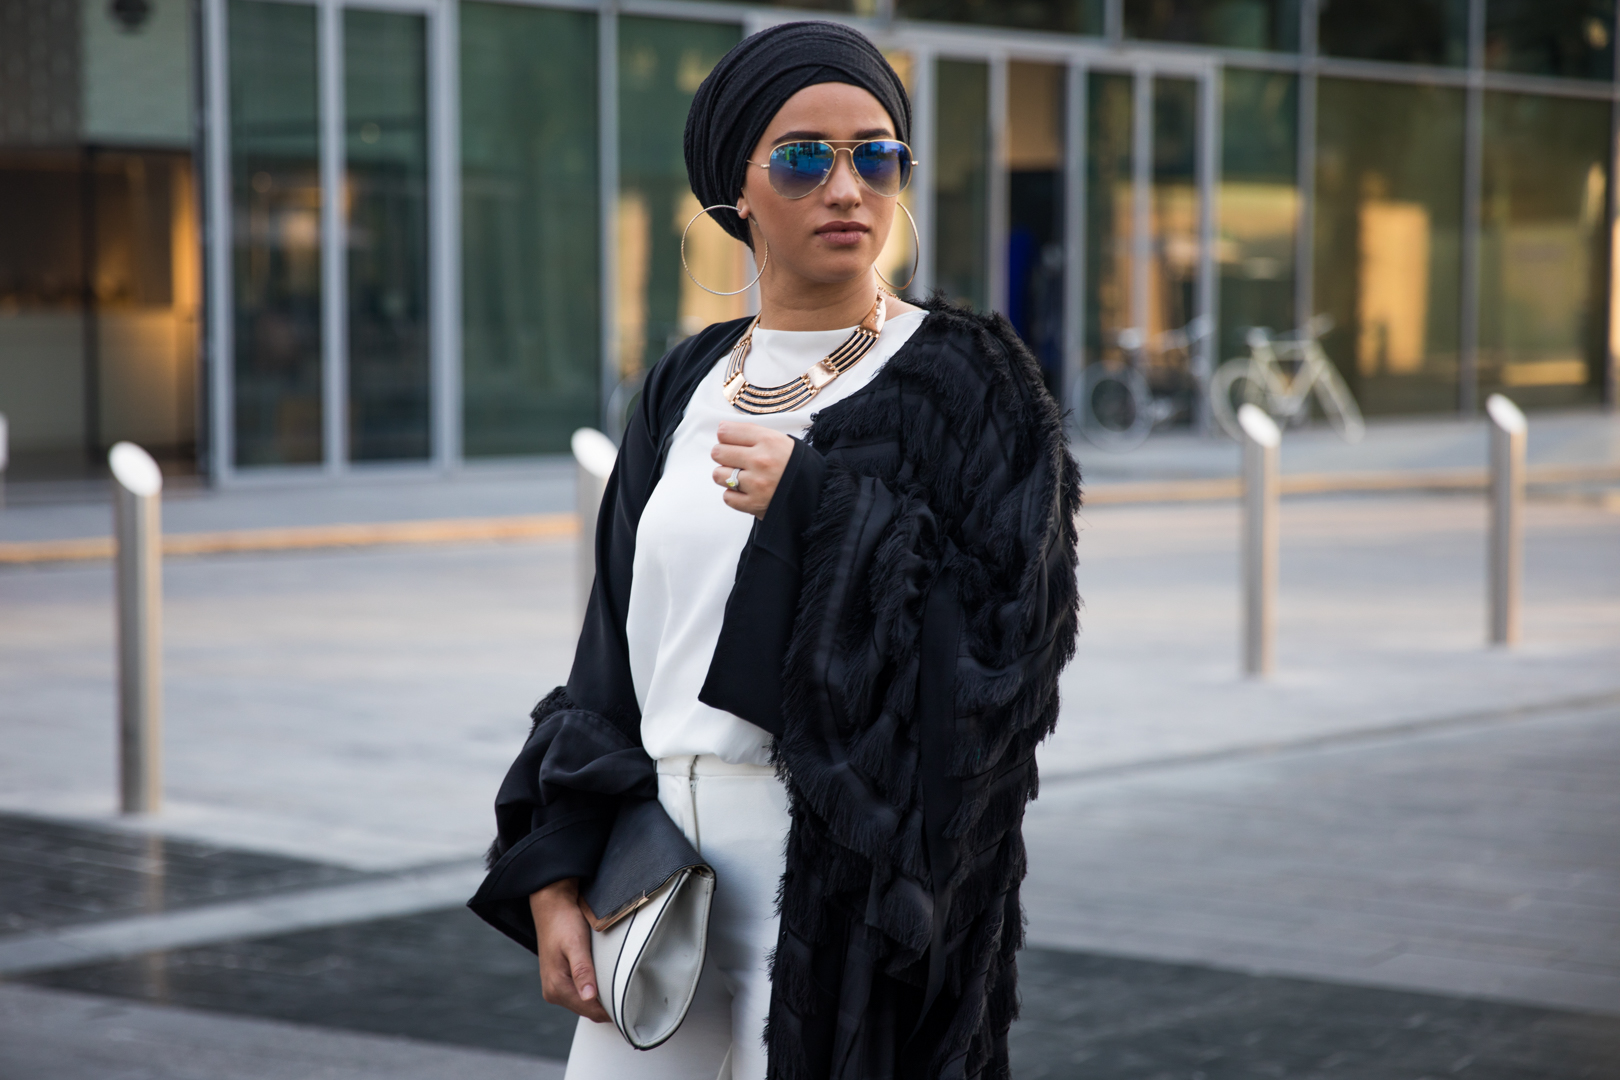 Hijab Street Style Sand In The City